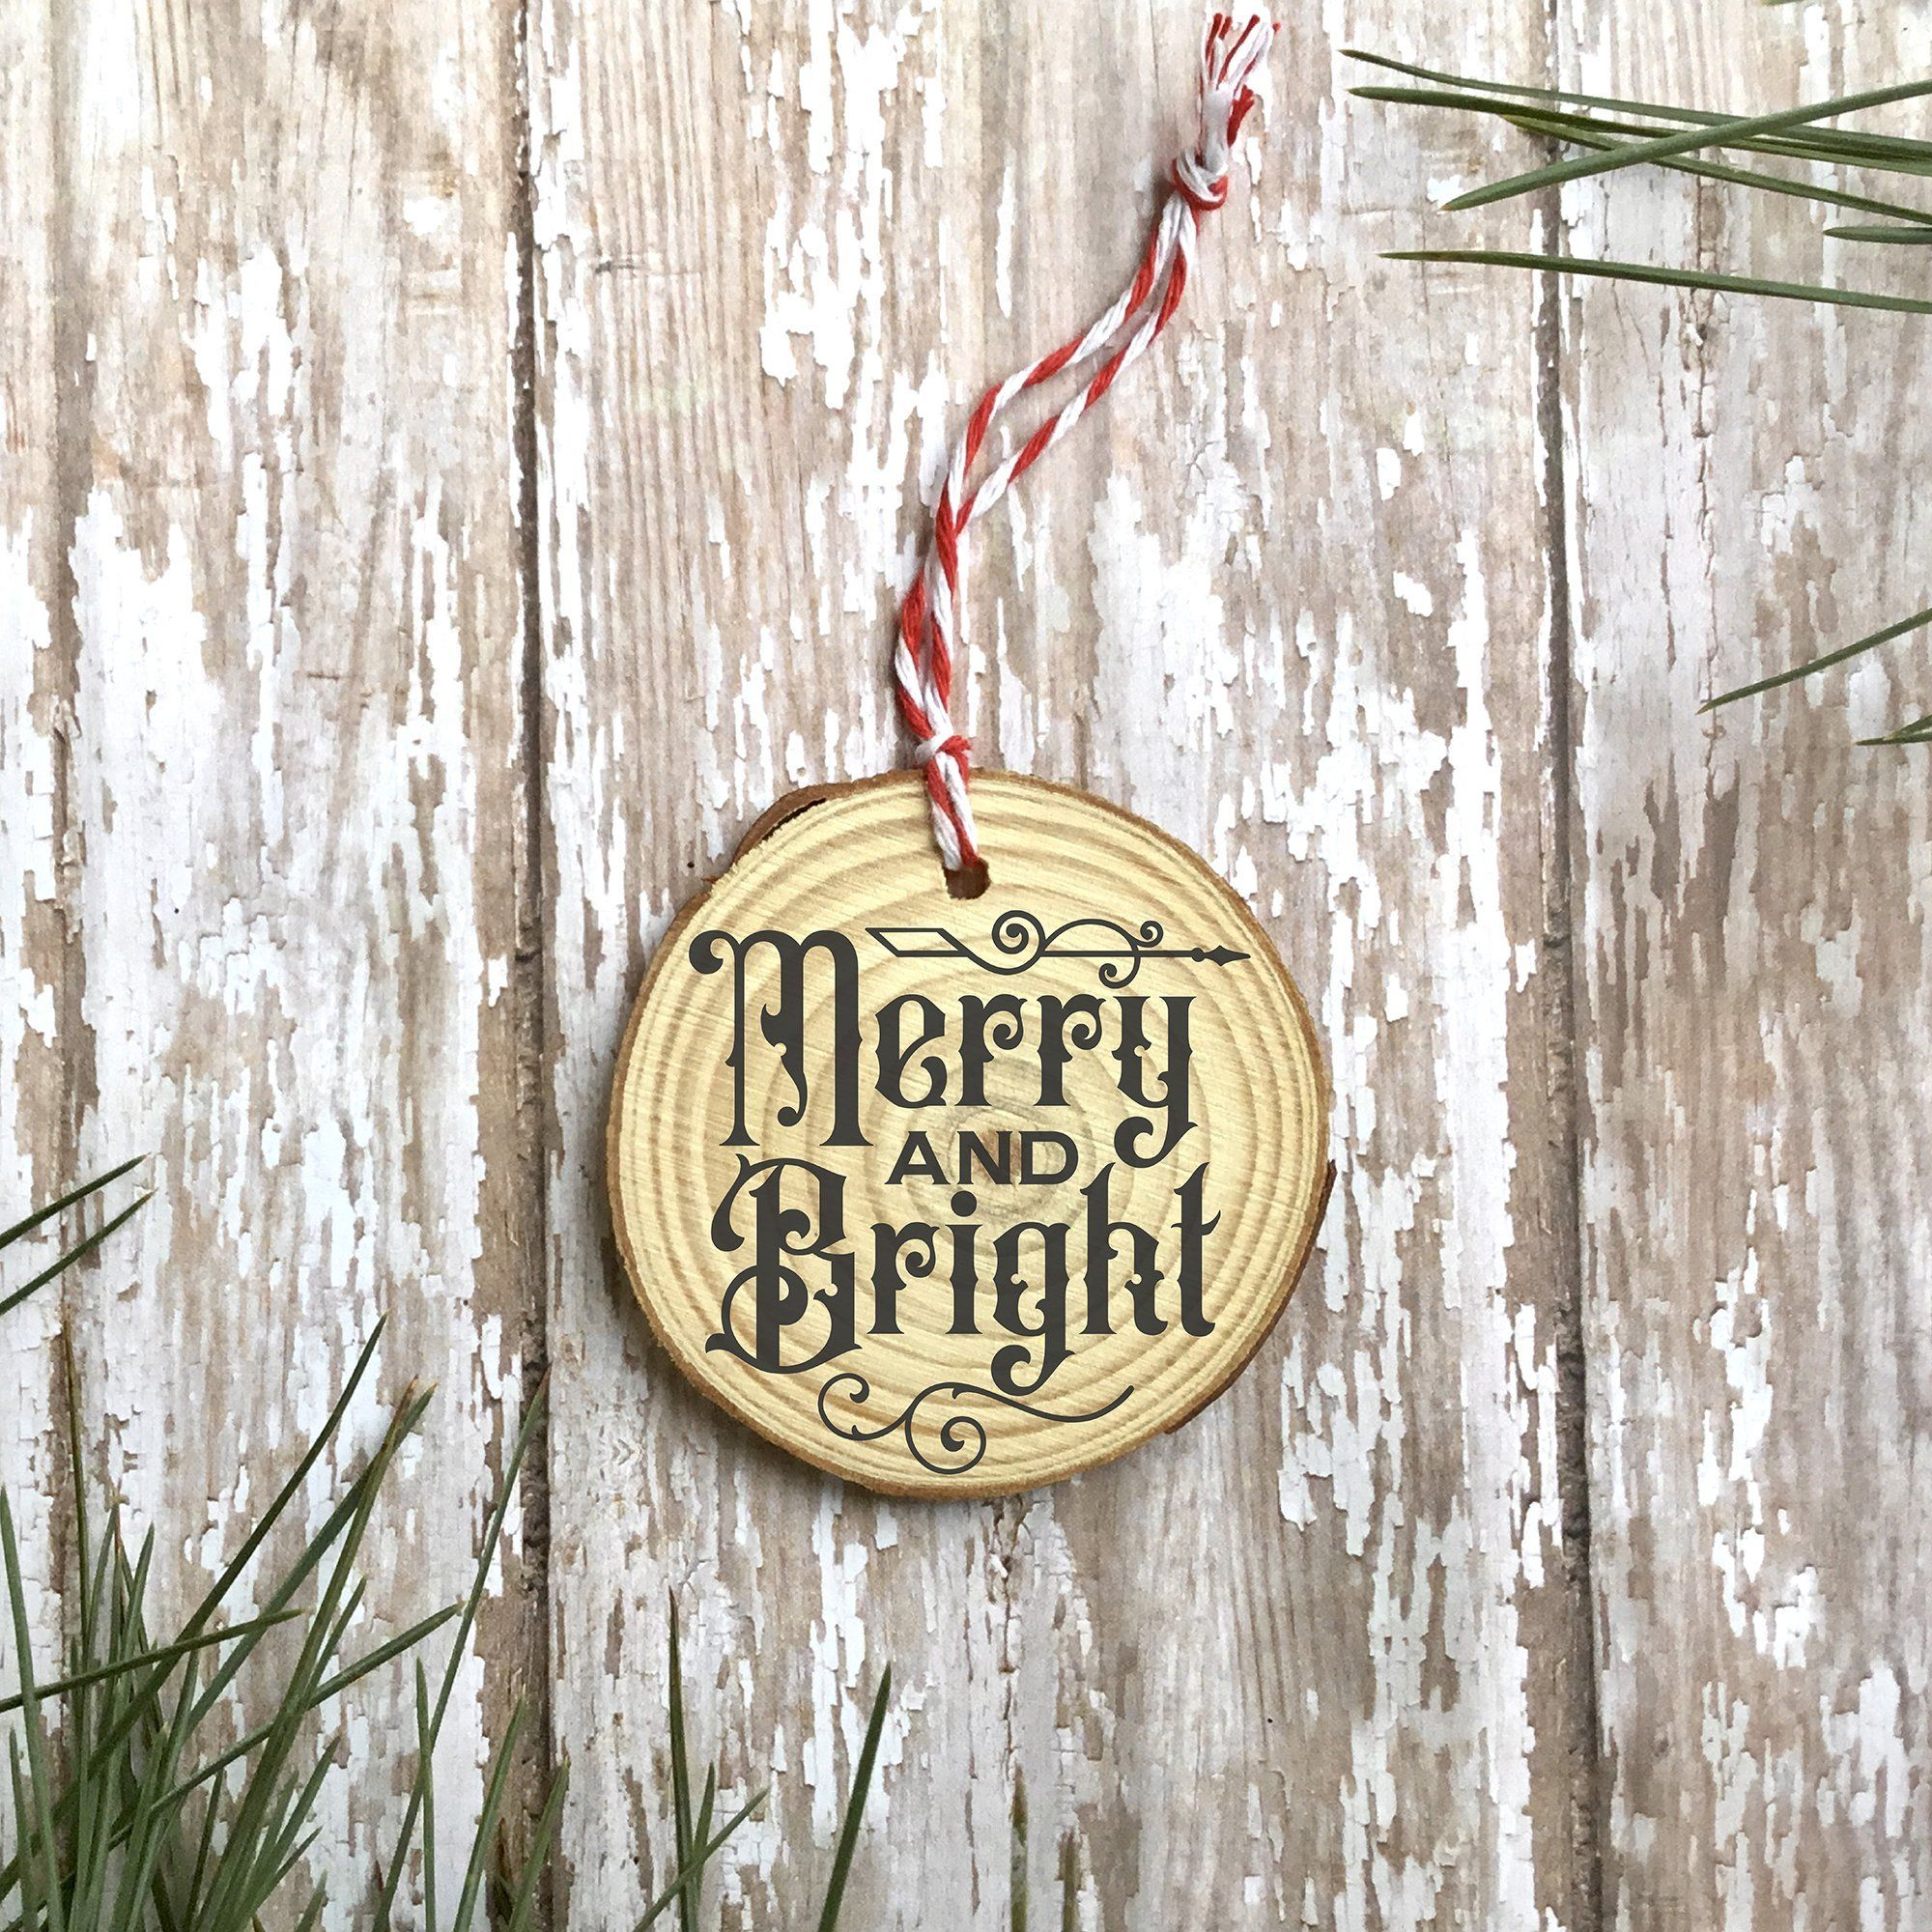 Gothic Christmas Ornament SVG File - Merry and Bright